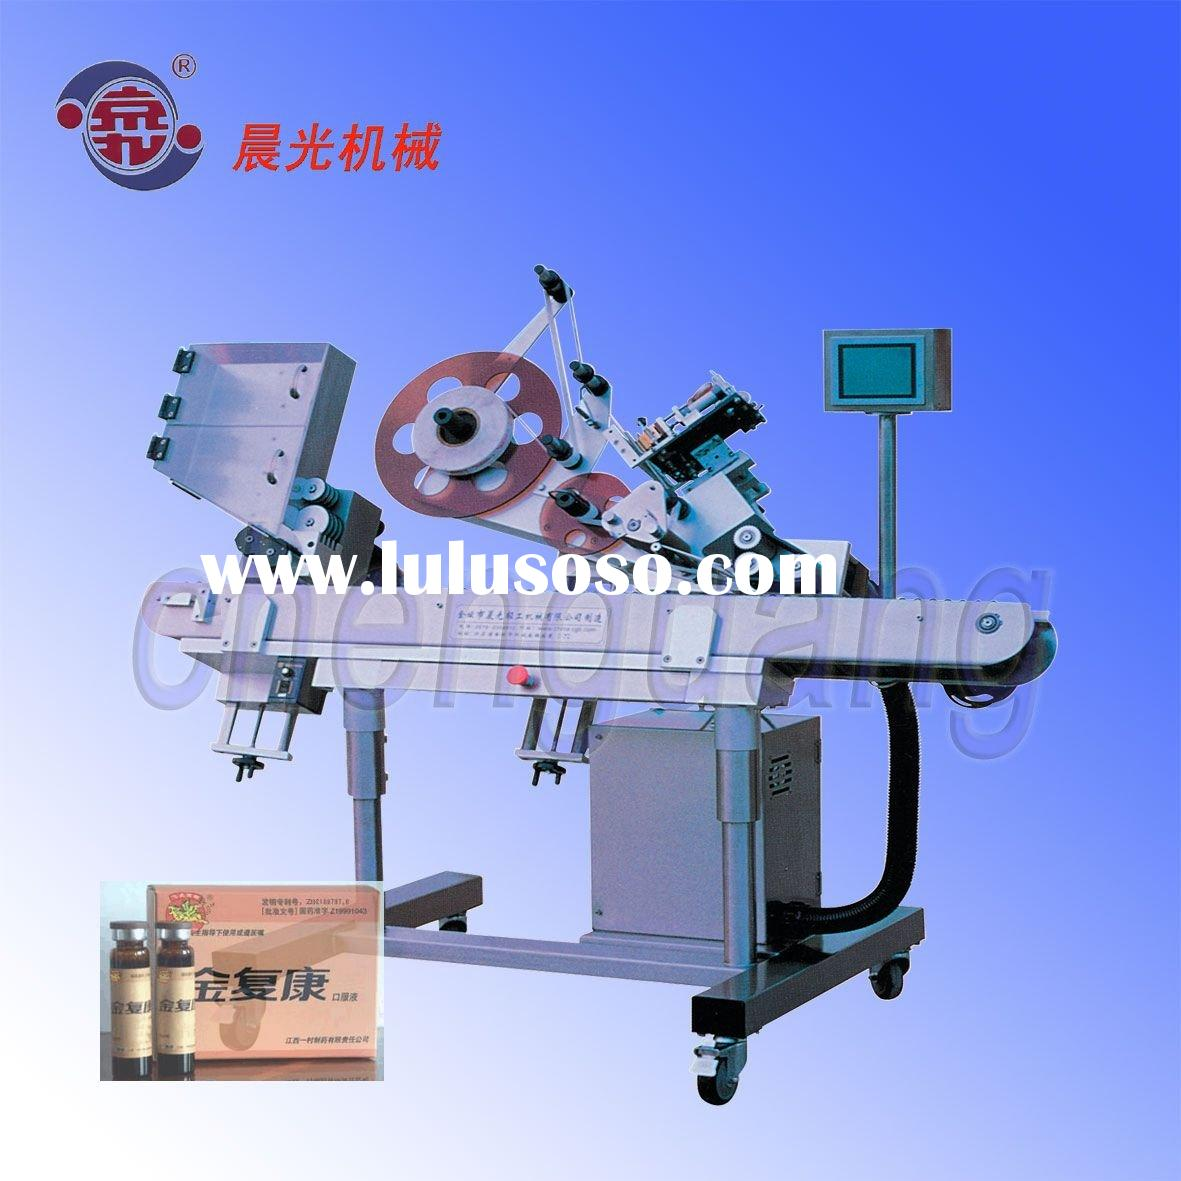 TW-2000 Horizontal Rolling Self-adhesive Vial Labeling Machine